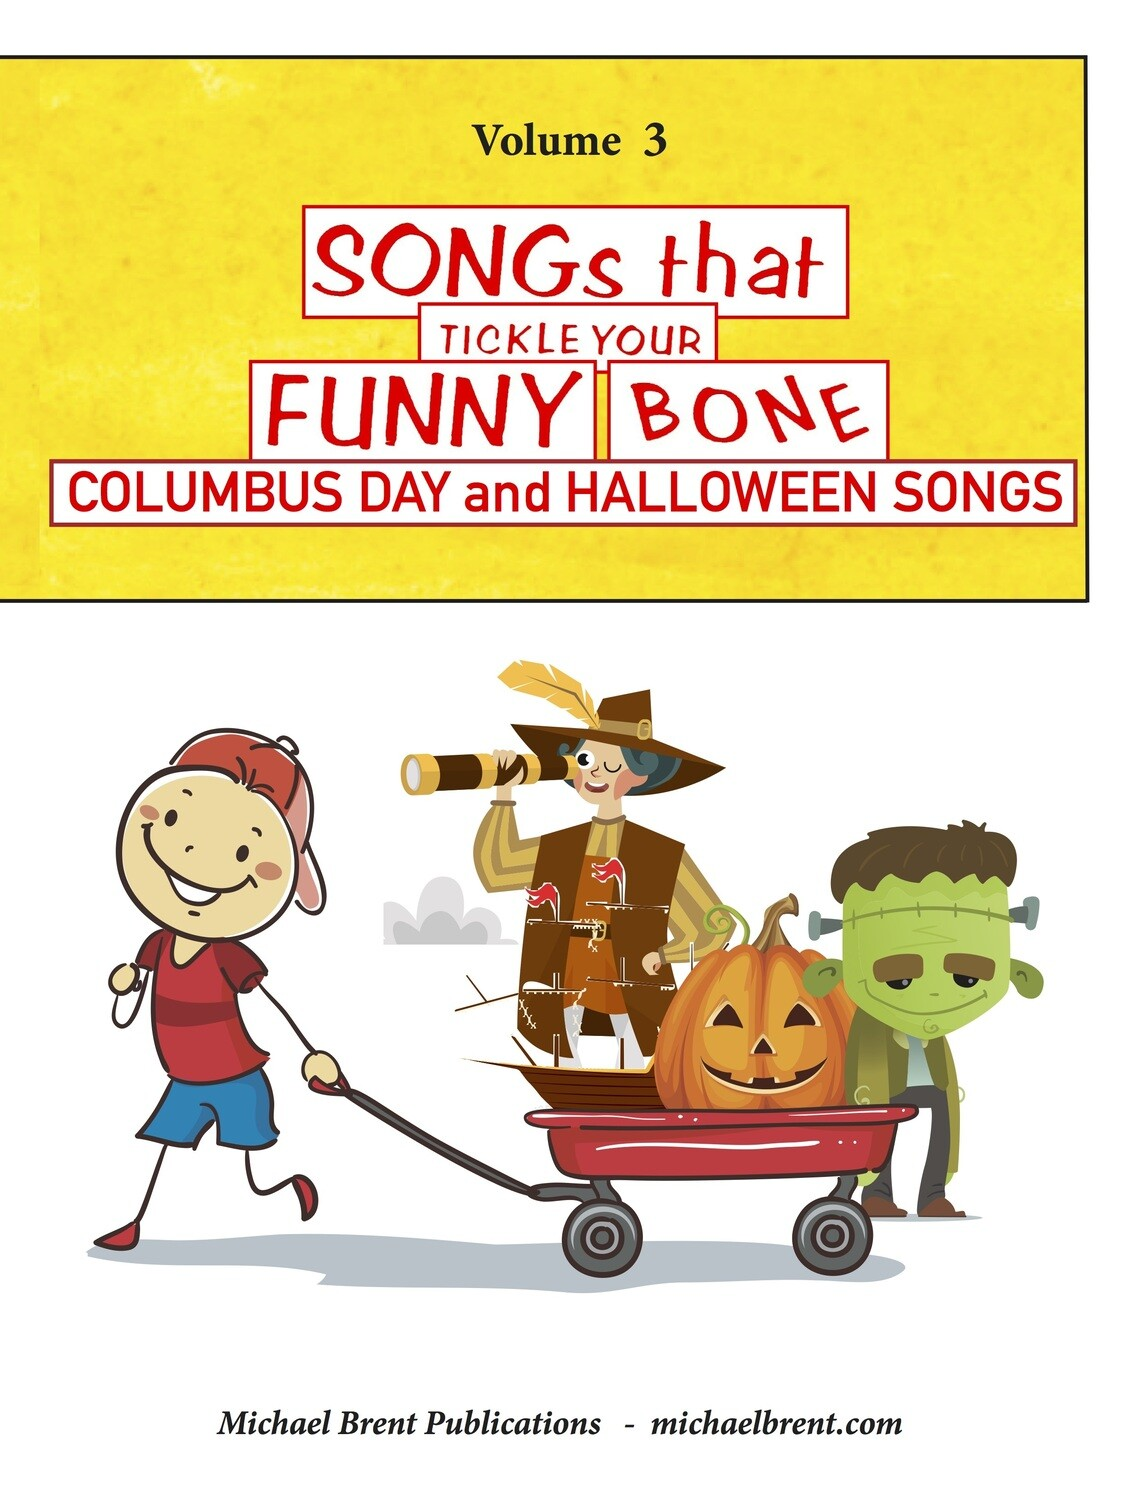 Songs that Tickle Your Funny Bone, Vol. 3 - Songbook